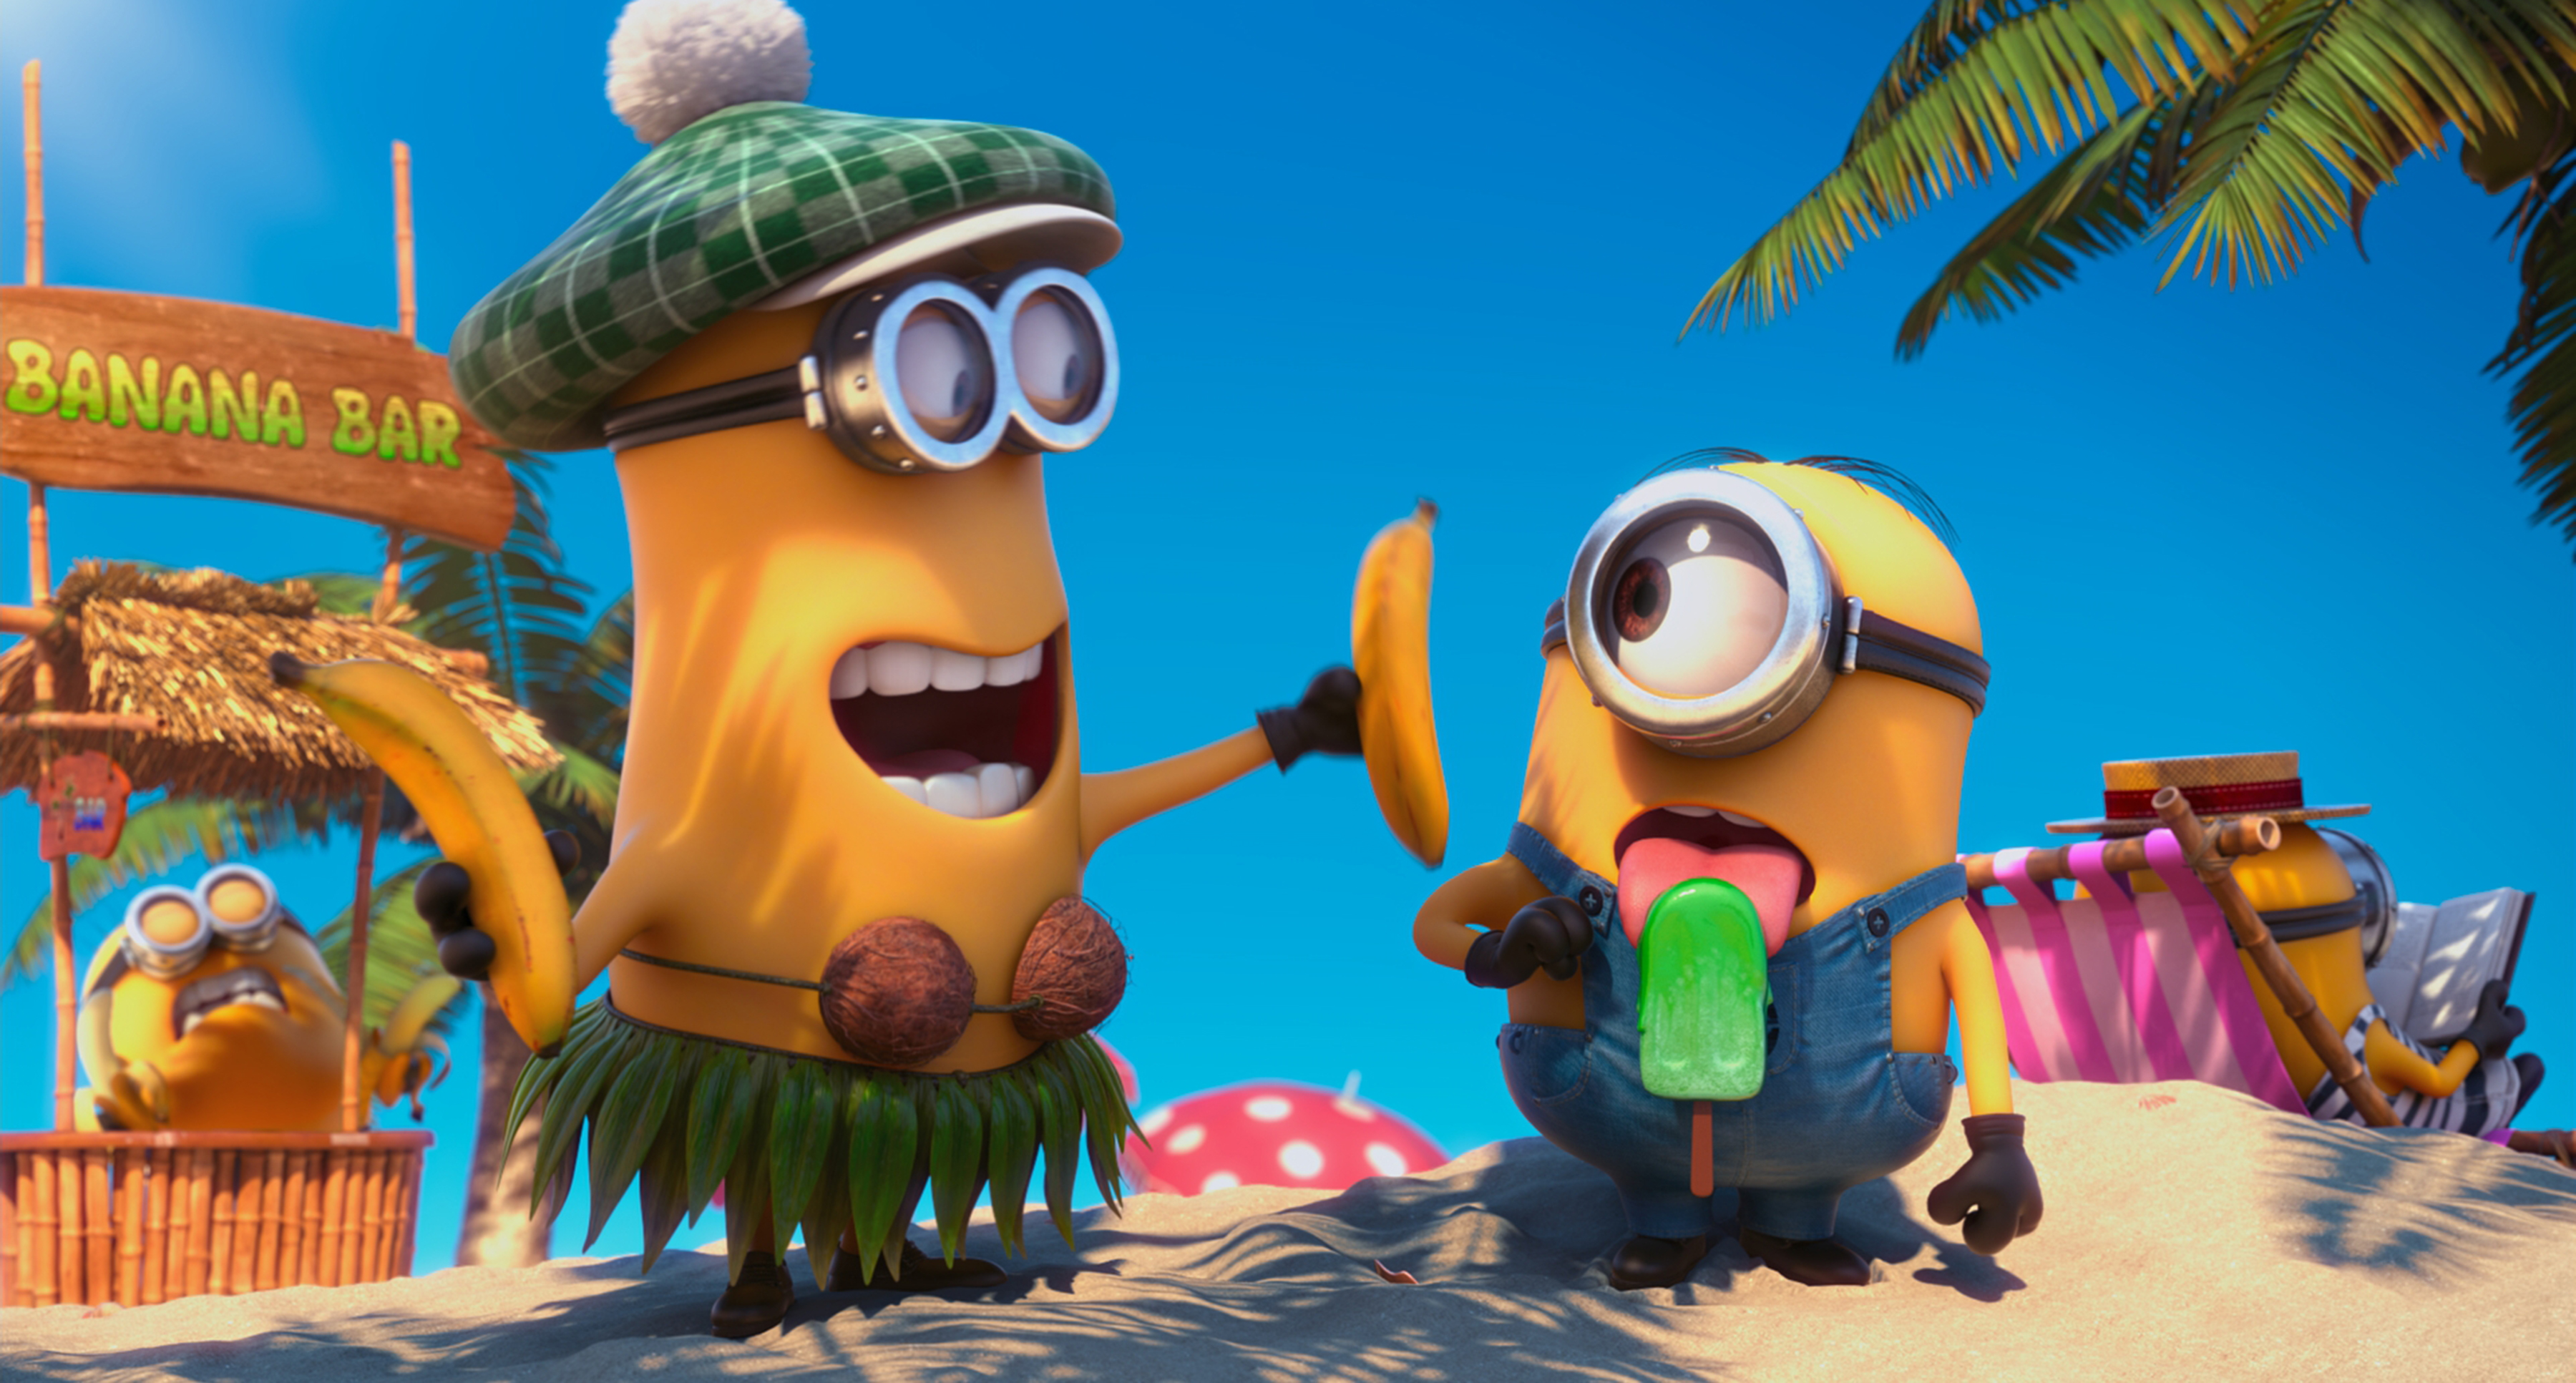 Cute Minion Wallpapers HD for Desktop (7)